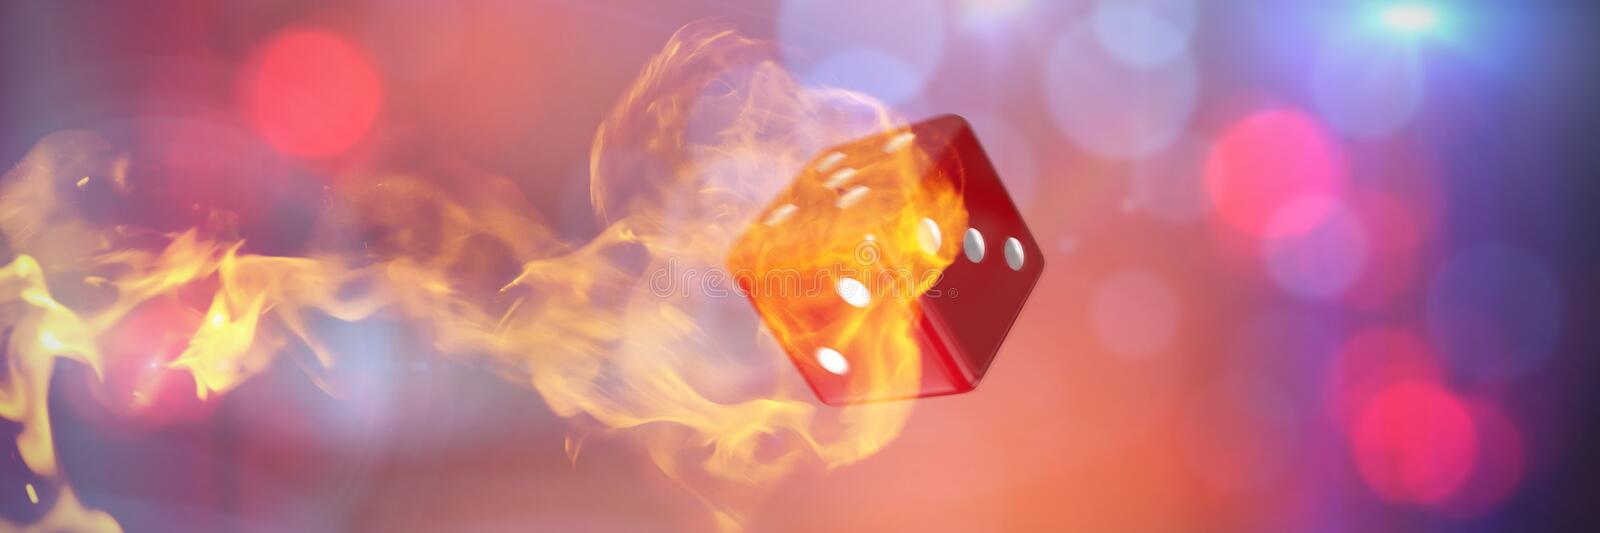 Composite image of computer graphic image of 3d dice. Computer graphic image of 3D dice against fire stock illustration